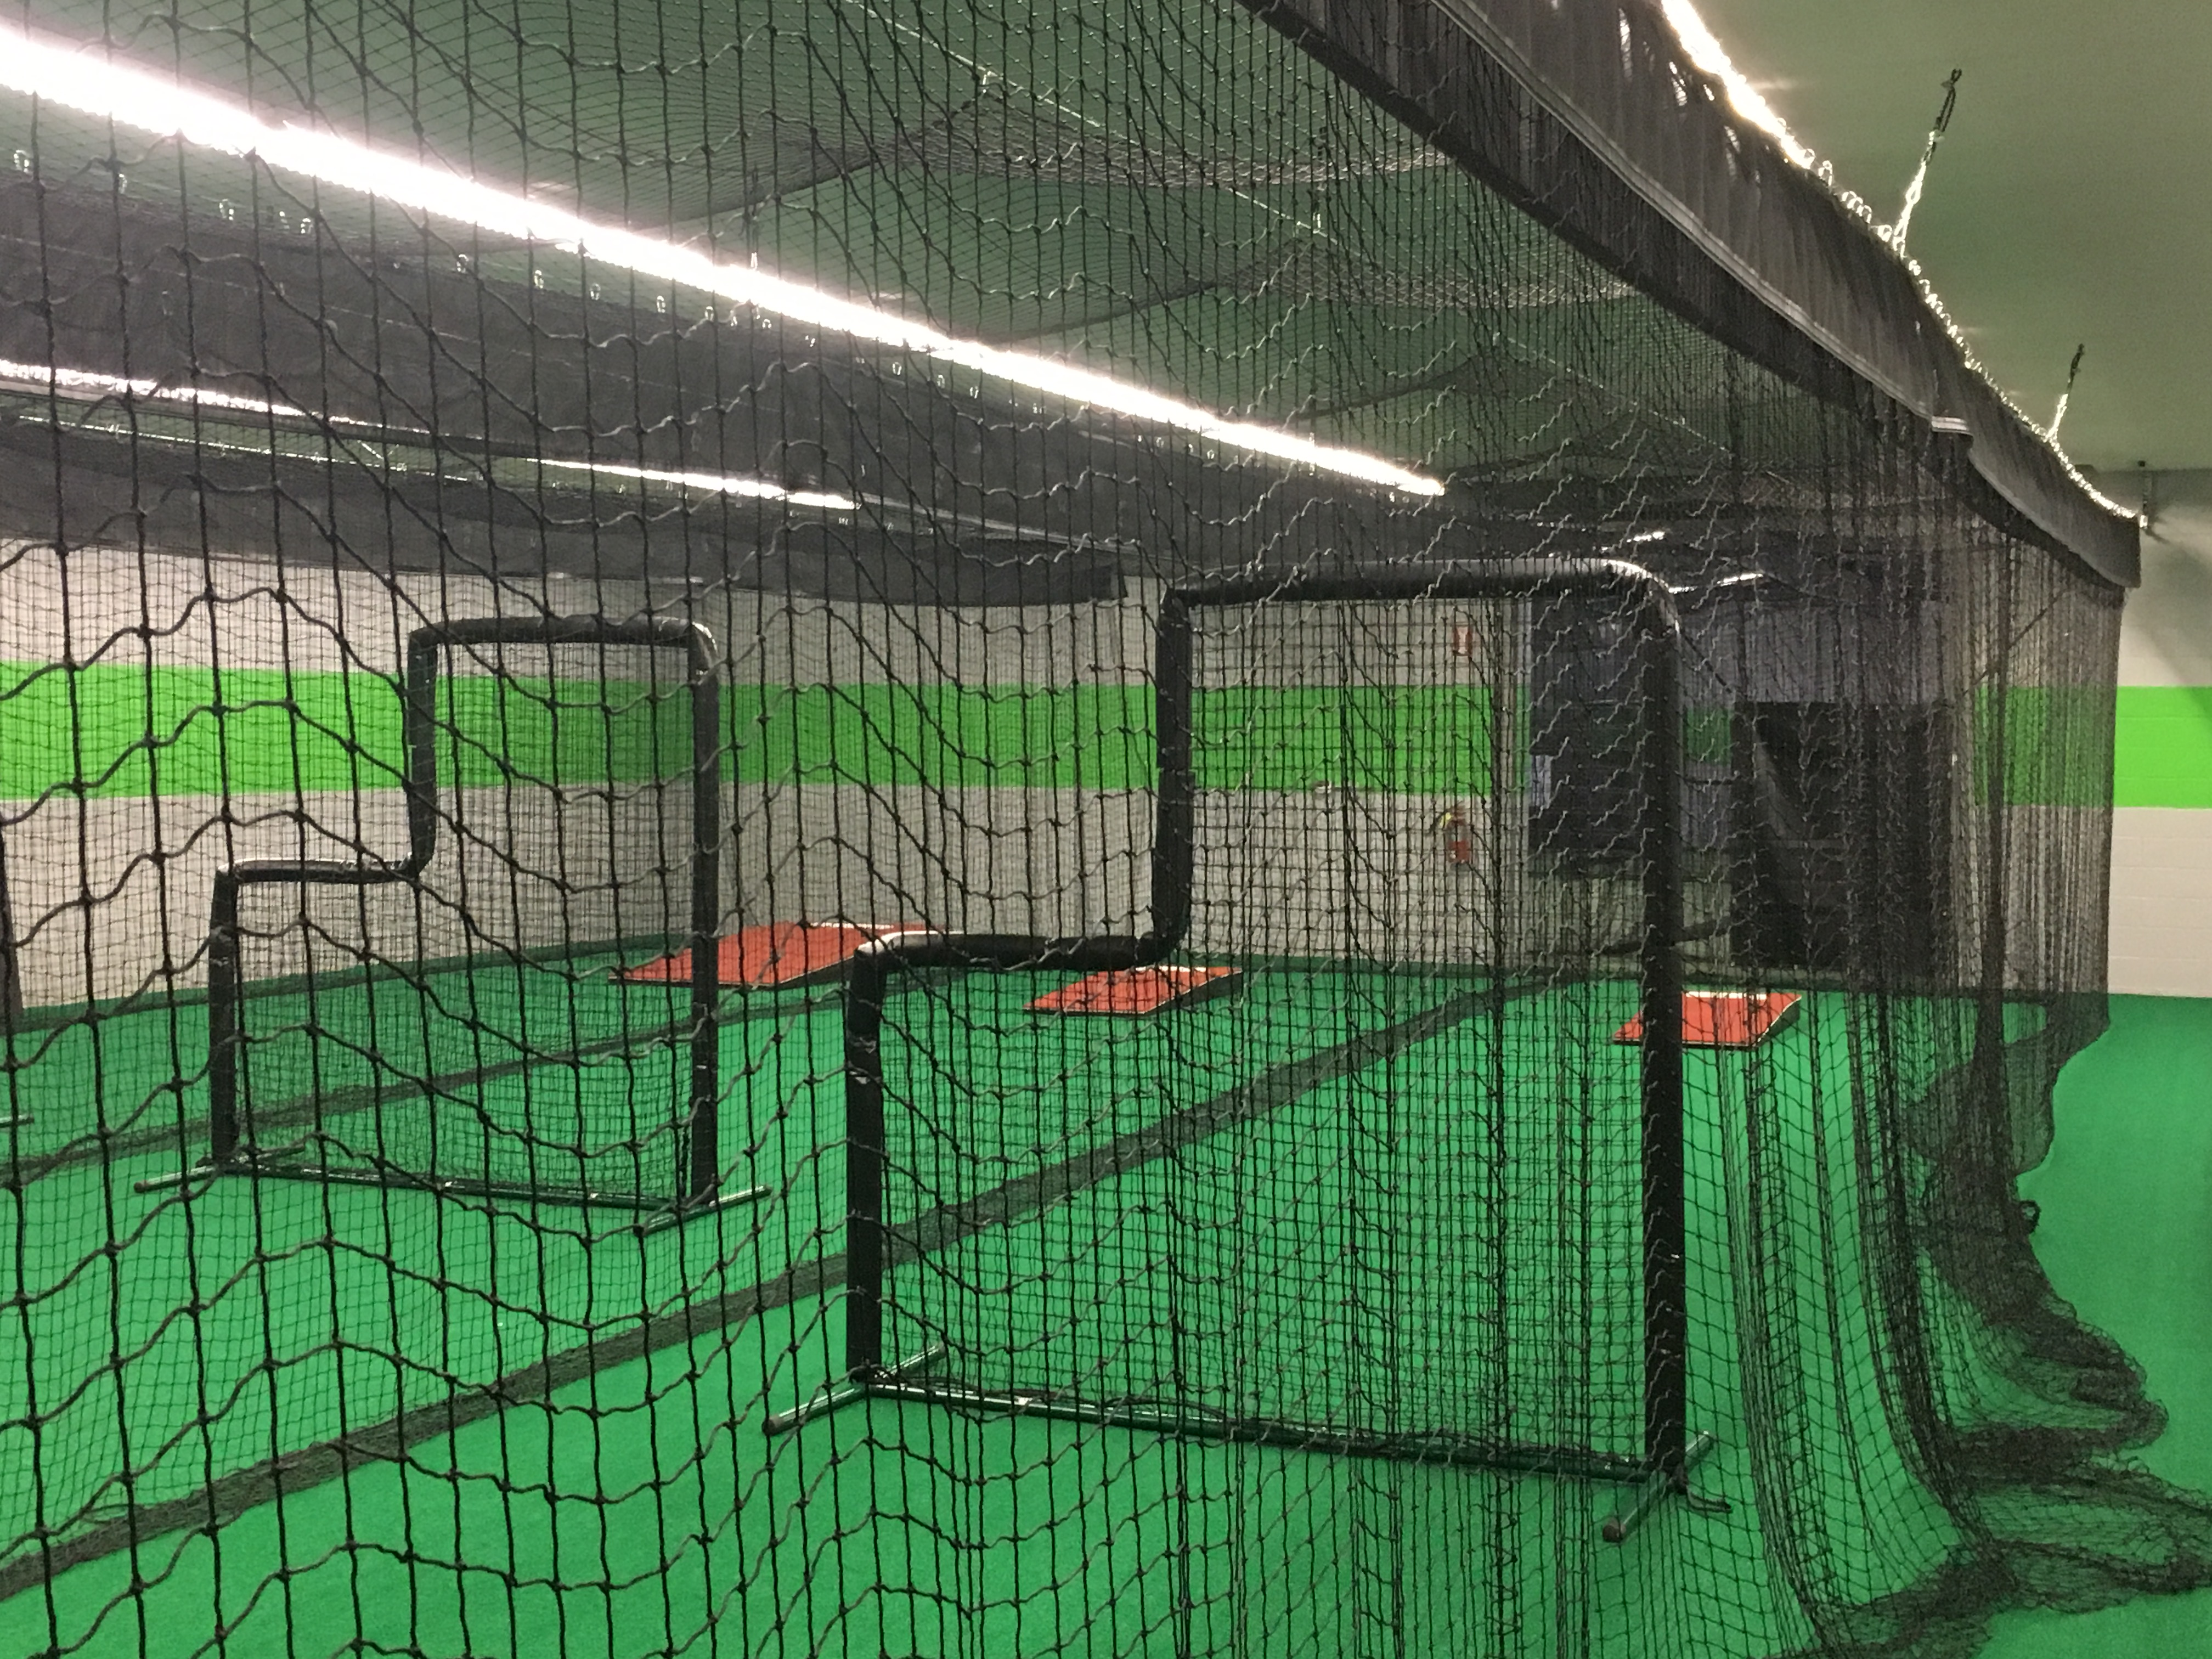 surge sports modern facility training athletes hitting turf tunnels equipped seven workout featuring areas needs clean meet equipment